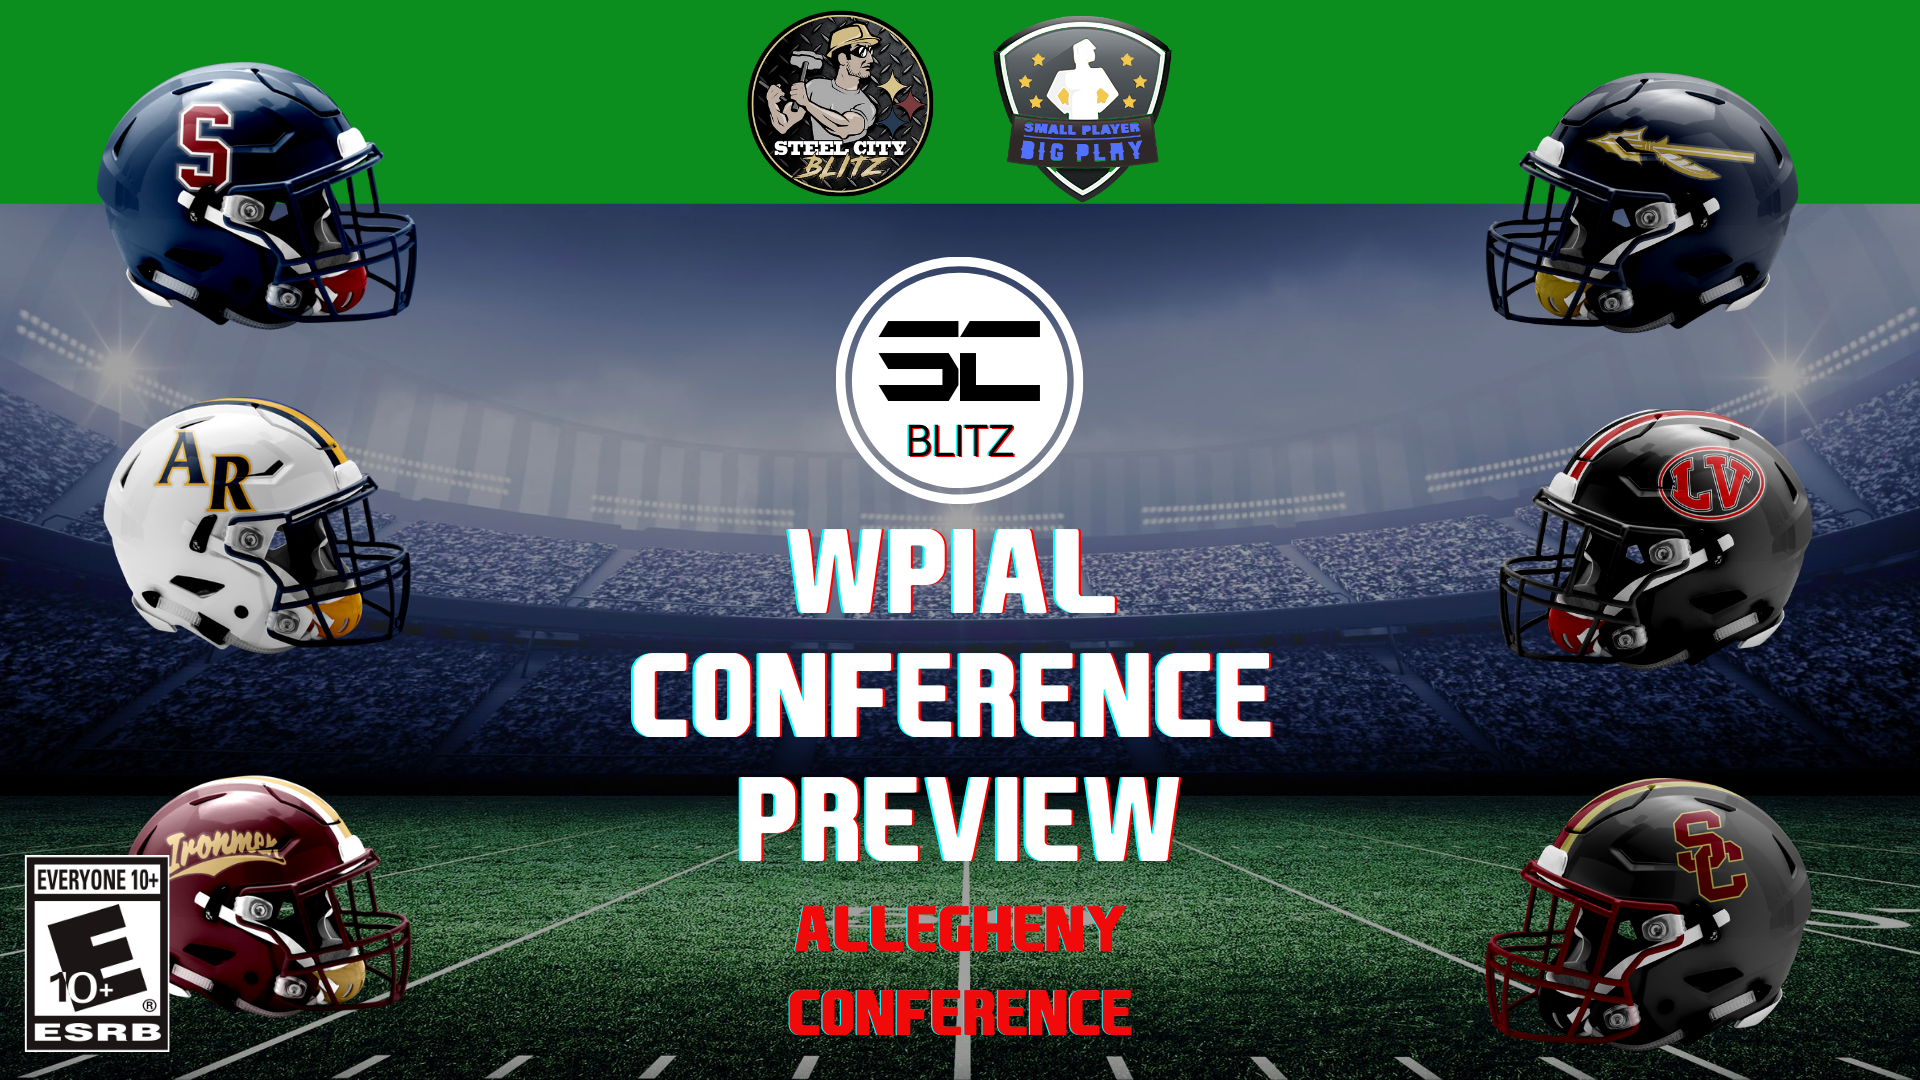 2020 Wpial Preview 2a Allegheny Conference Steel City Blitz